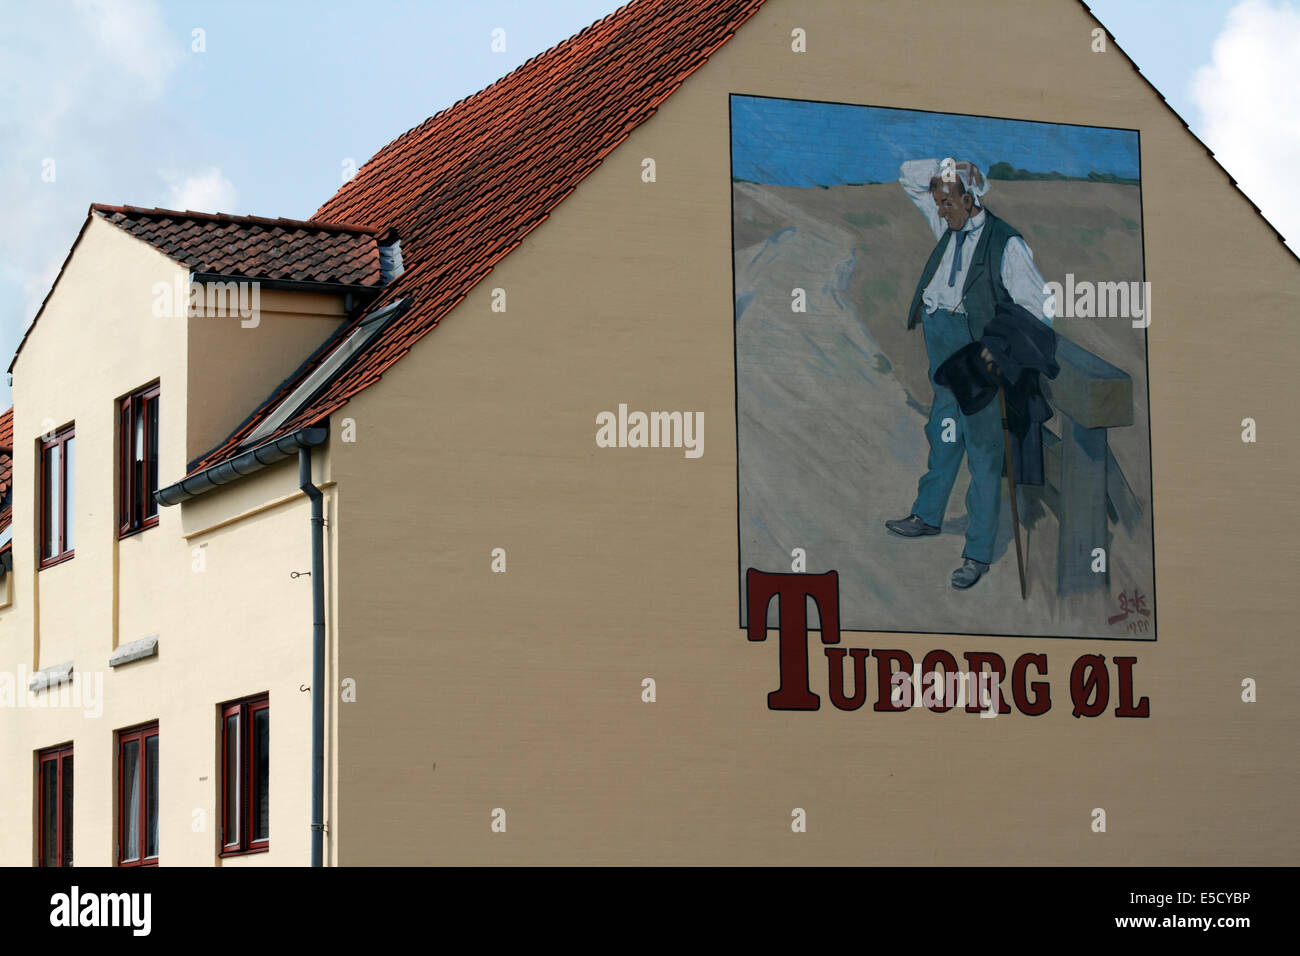 Tuborg's The Thirsty Man, gable mural from the poster painted by Erik Henningsen and used for Tuborg beer advertising - Stock Image